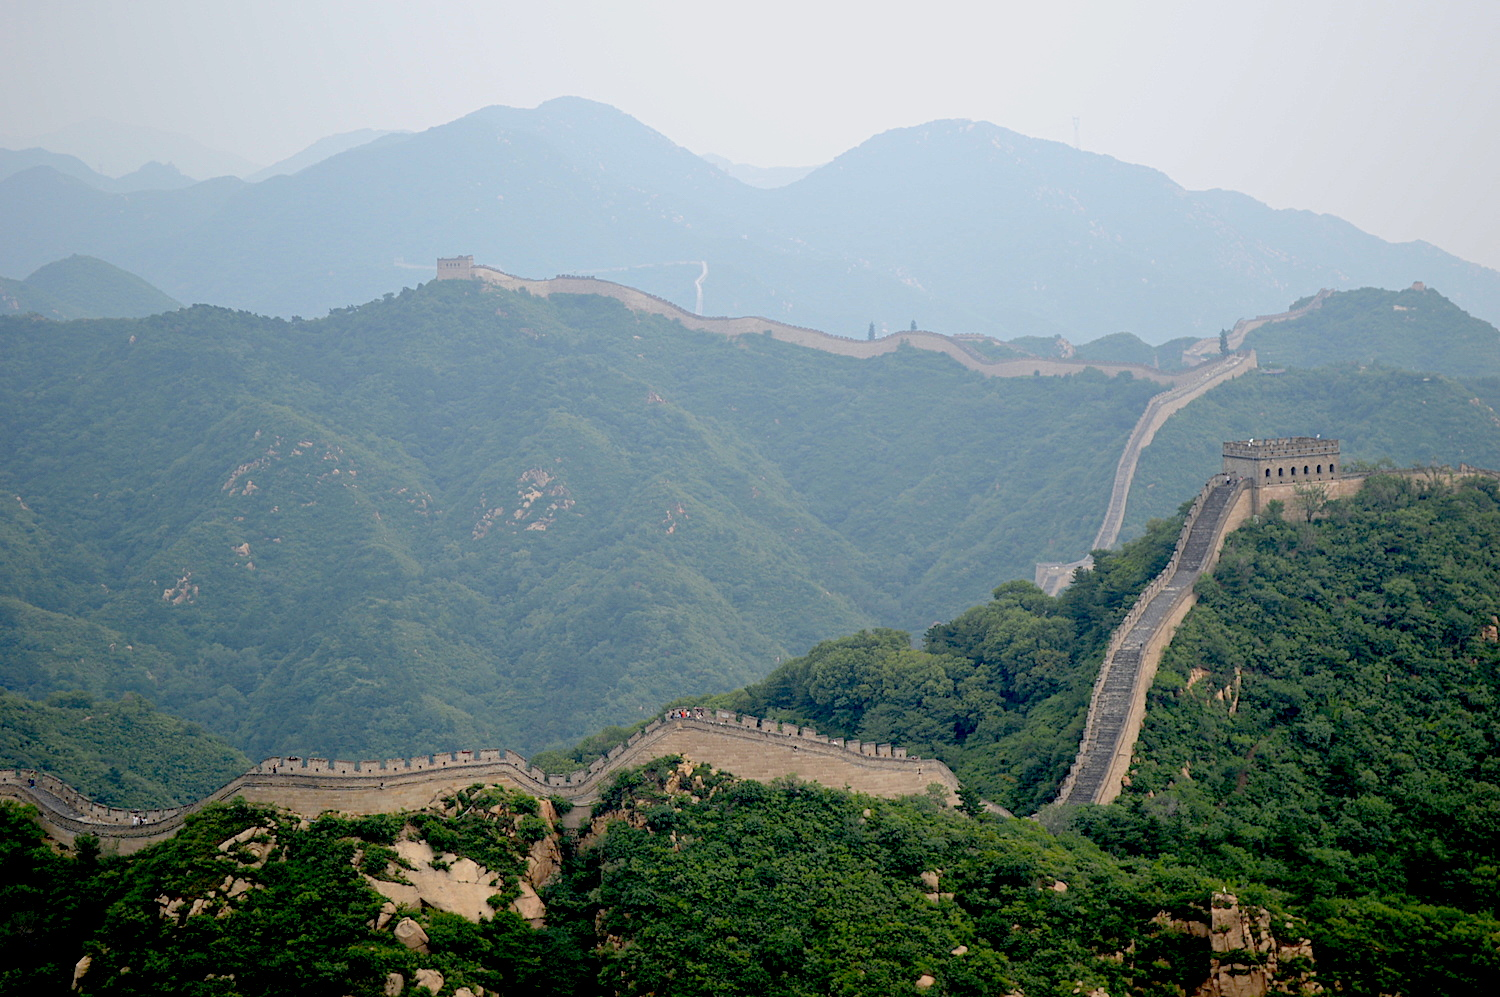 CHINA TRAVEL GUIDE - Exotic, unique, historic, and so much more than you could ever ask for. Here is The Ultimate China Starter Guide!